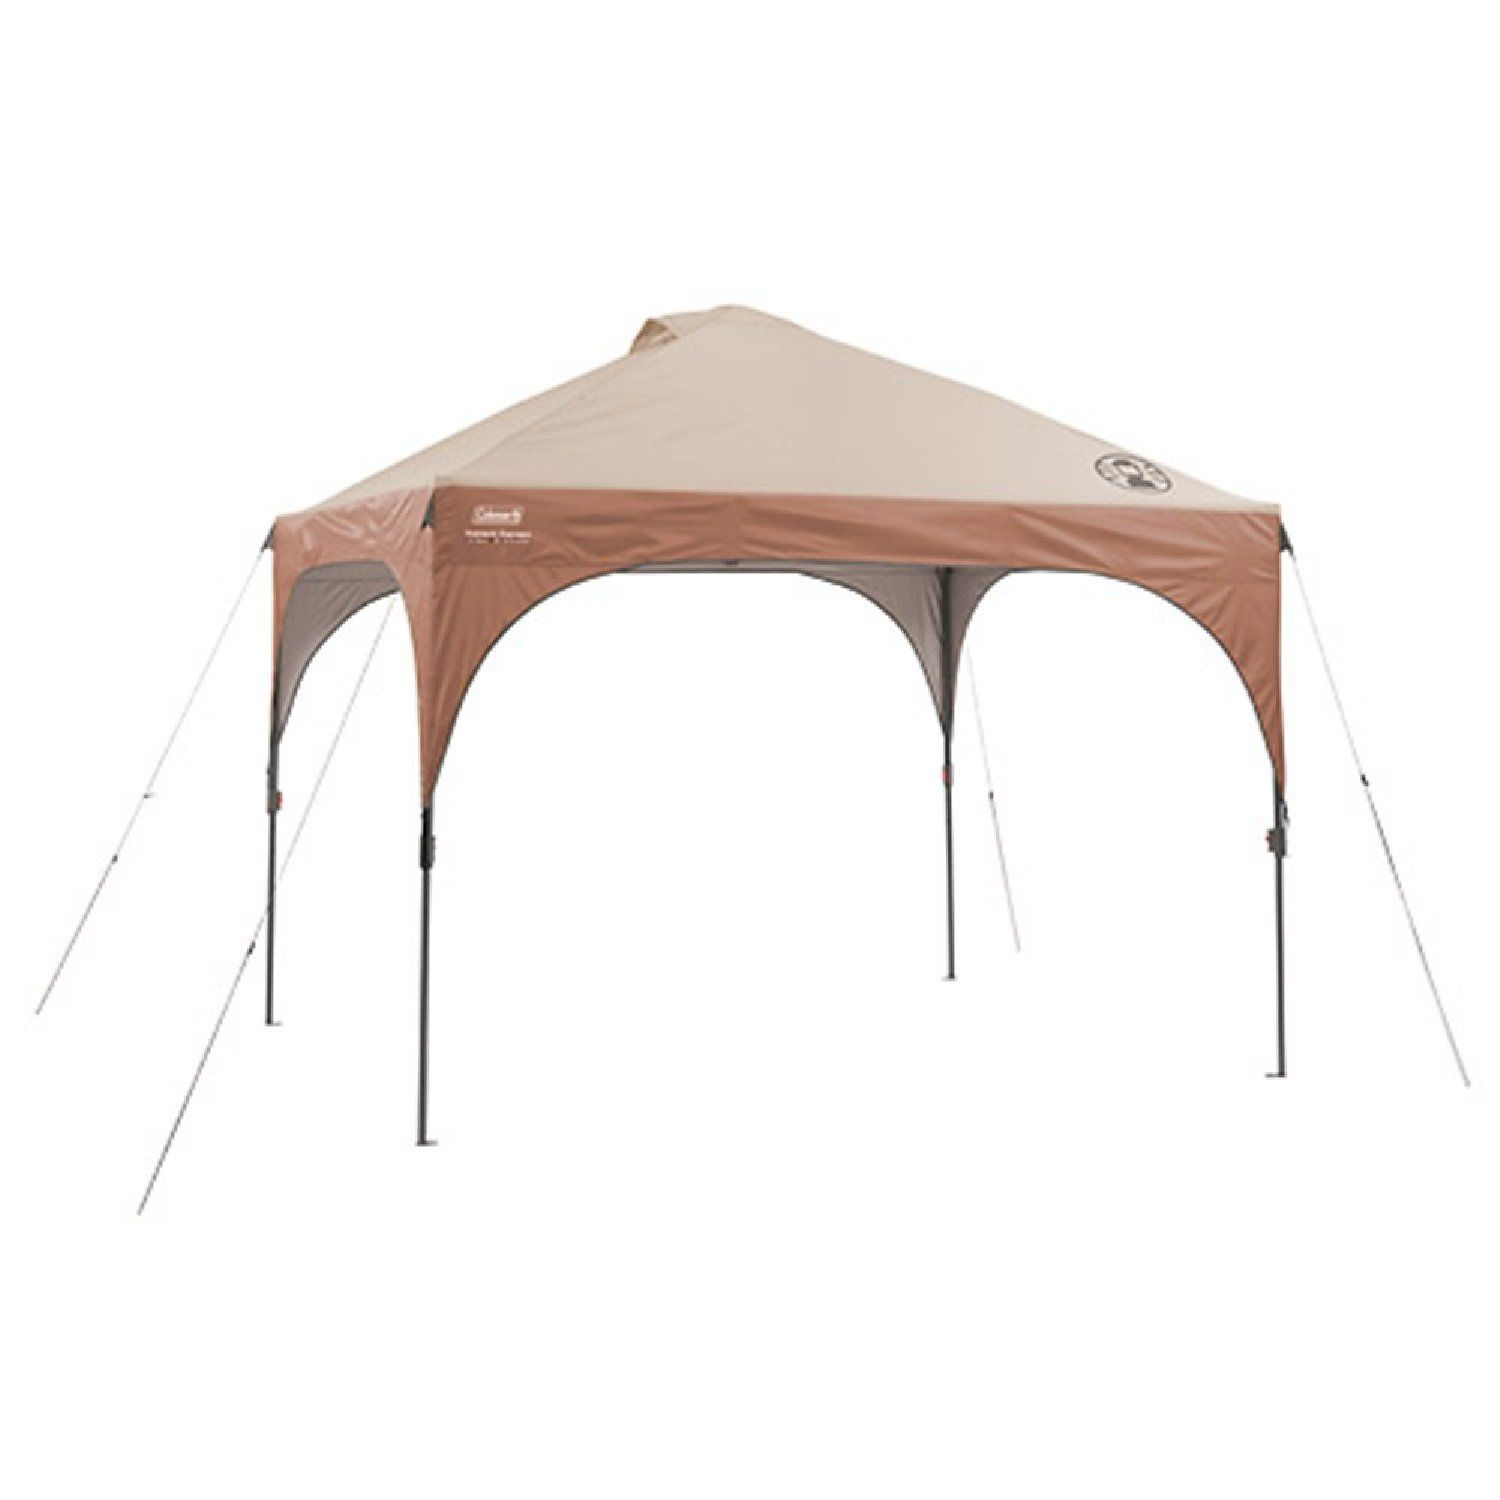 Camping Tents Coleman Instant Canopy With Led Lighting System